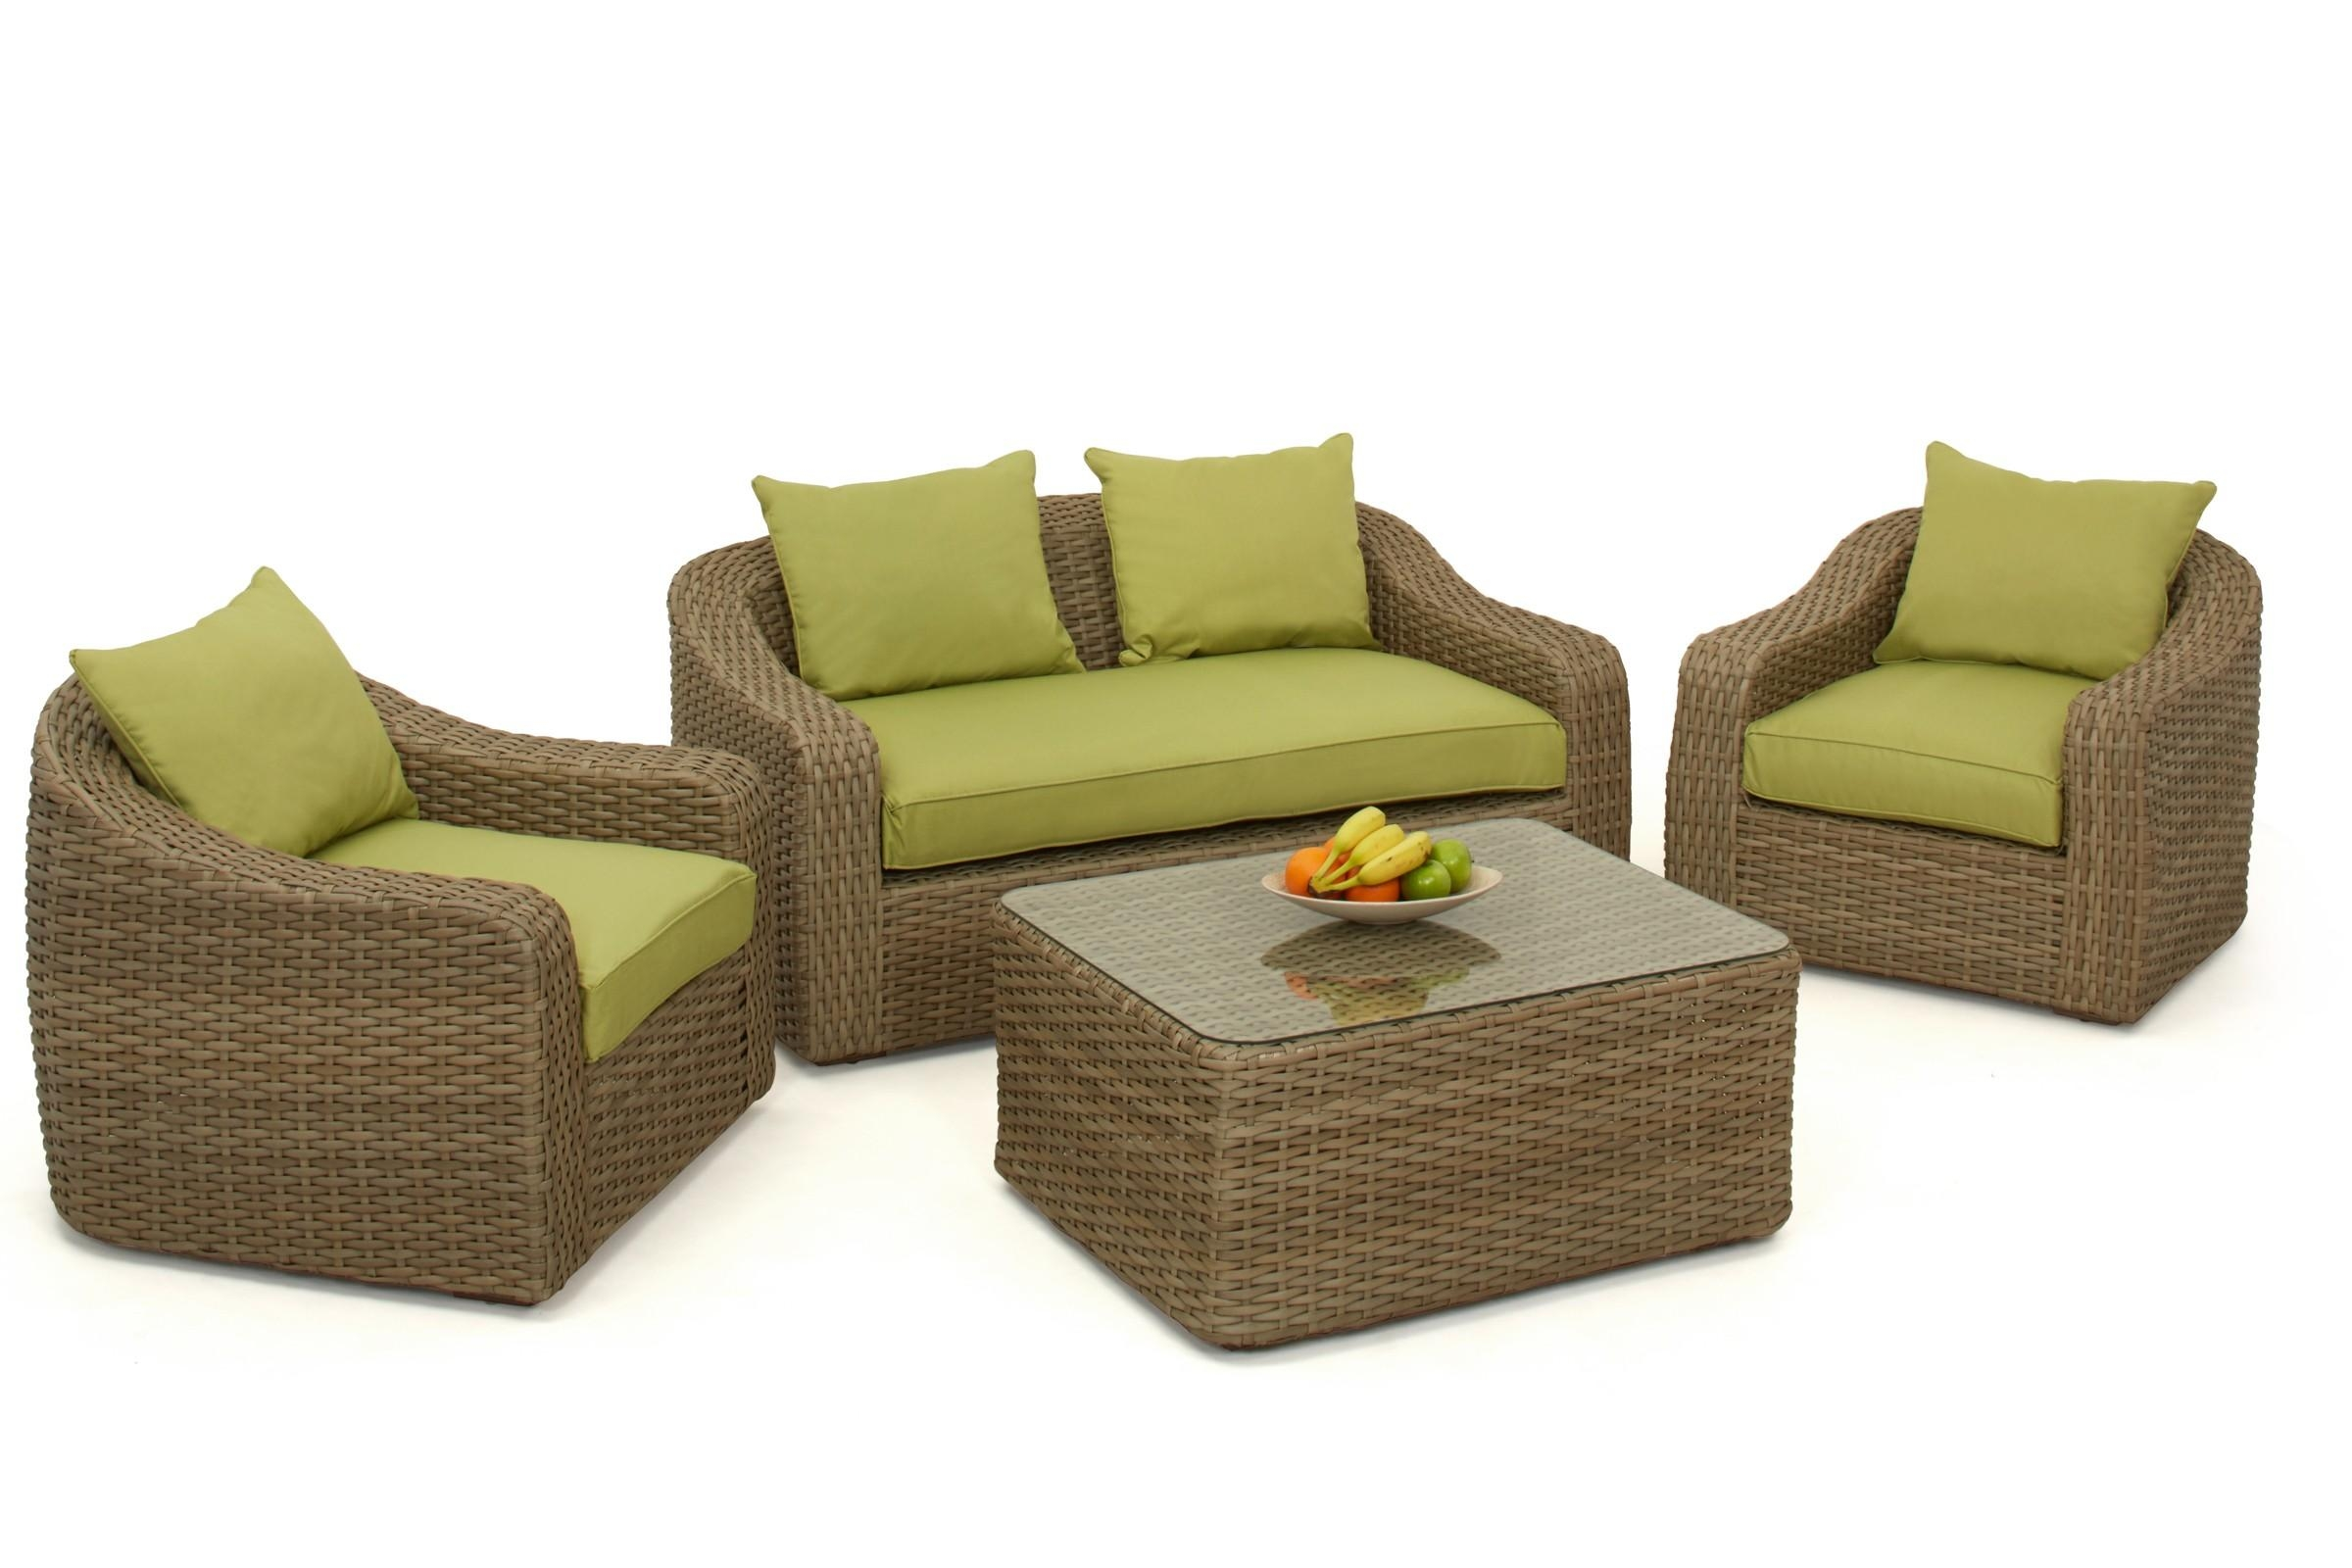 Maze Rattan Milan Rounded Sofa Set | Maze Living In Rounded Sofa (Image 10 of 20)